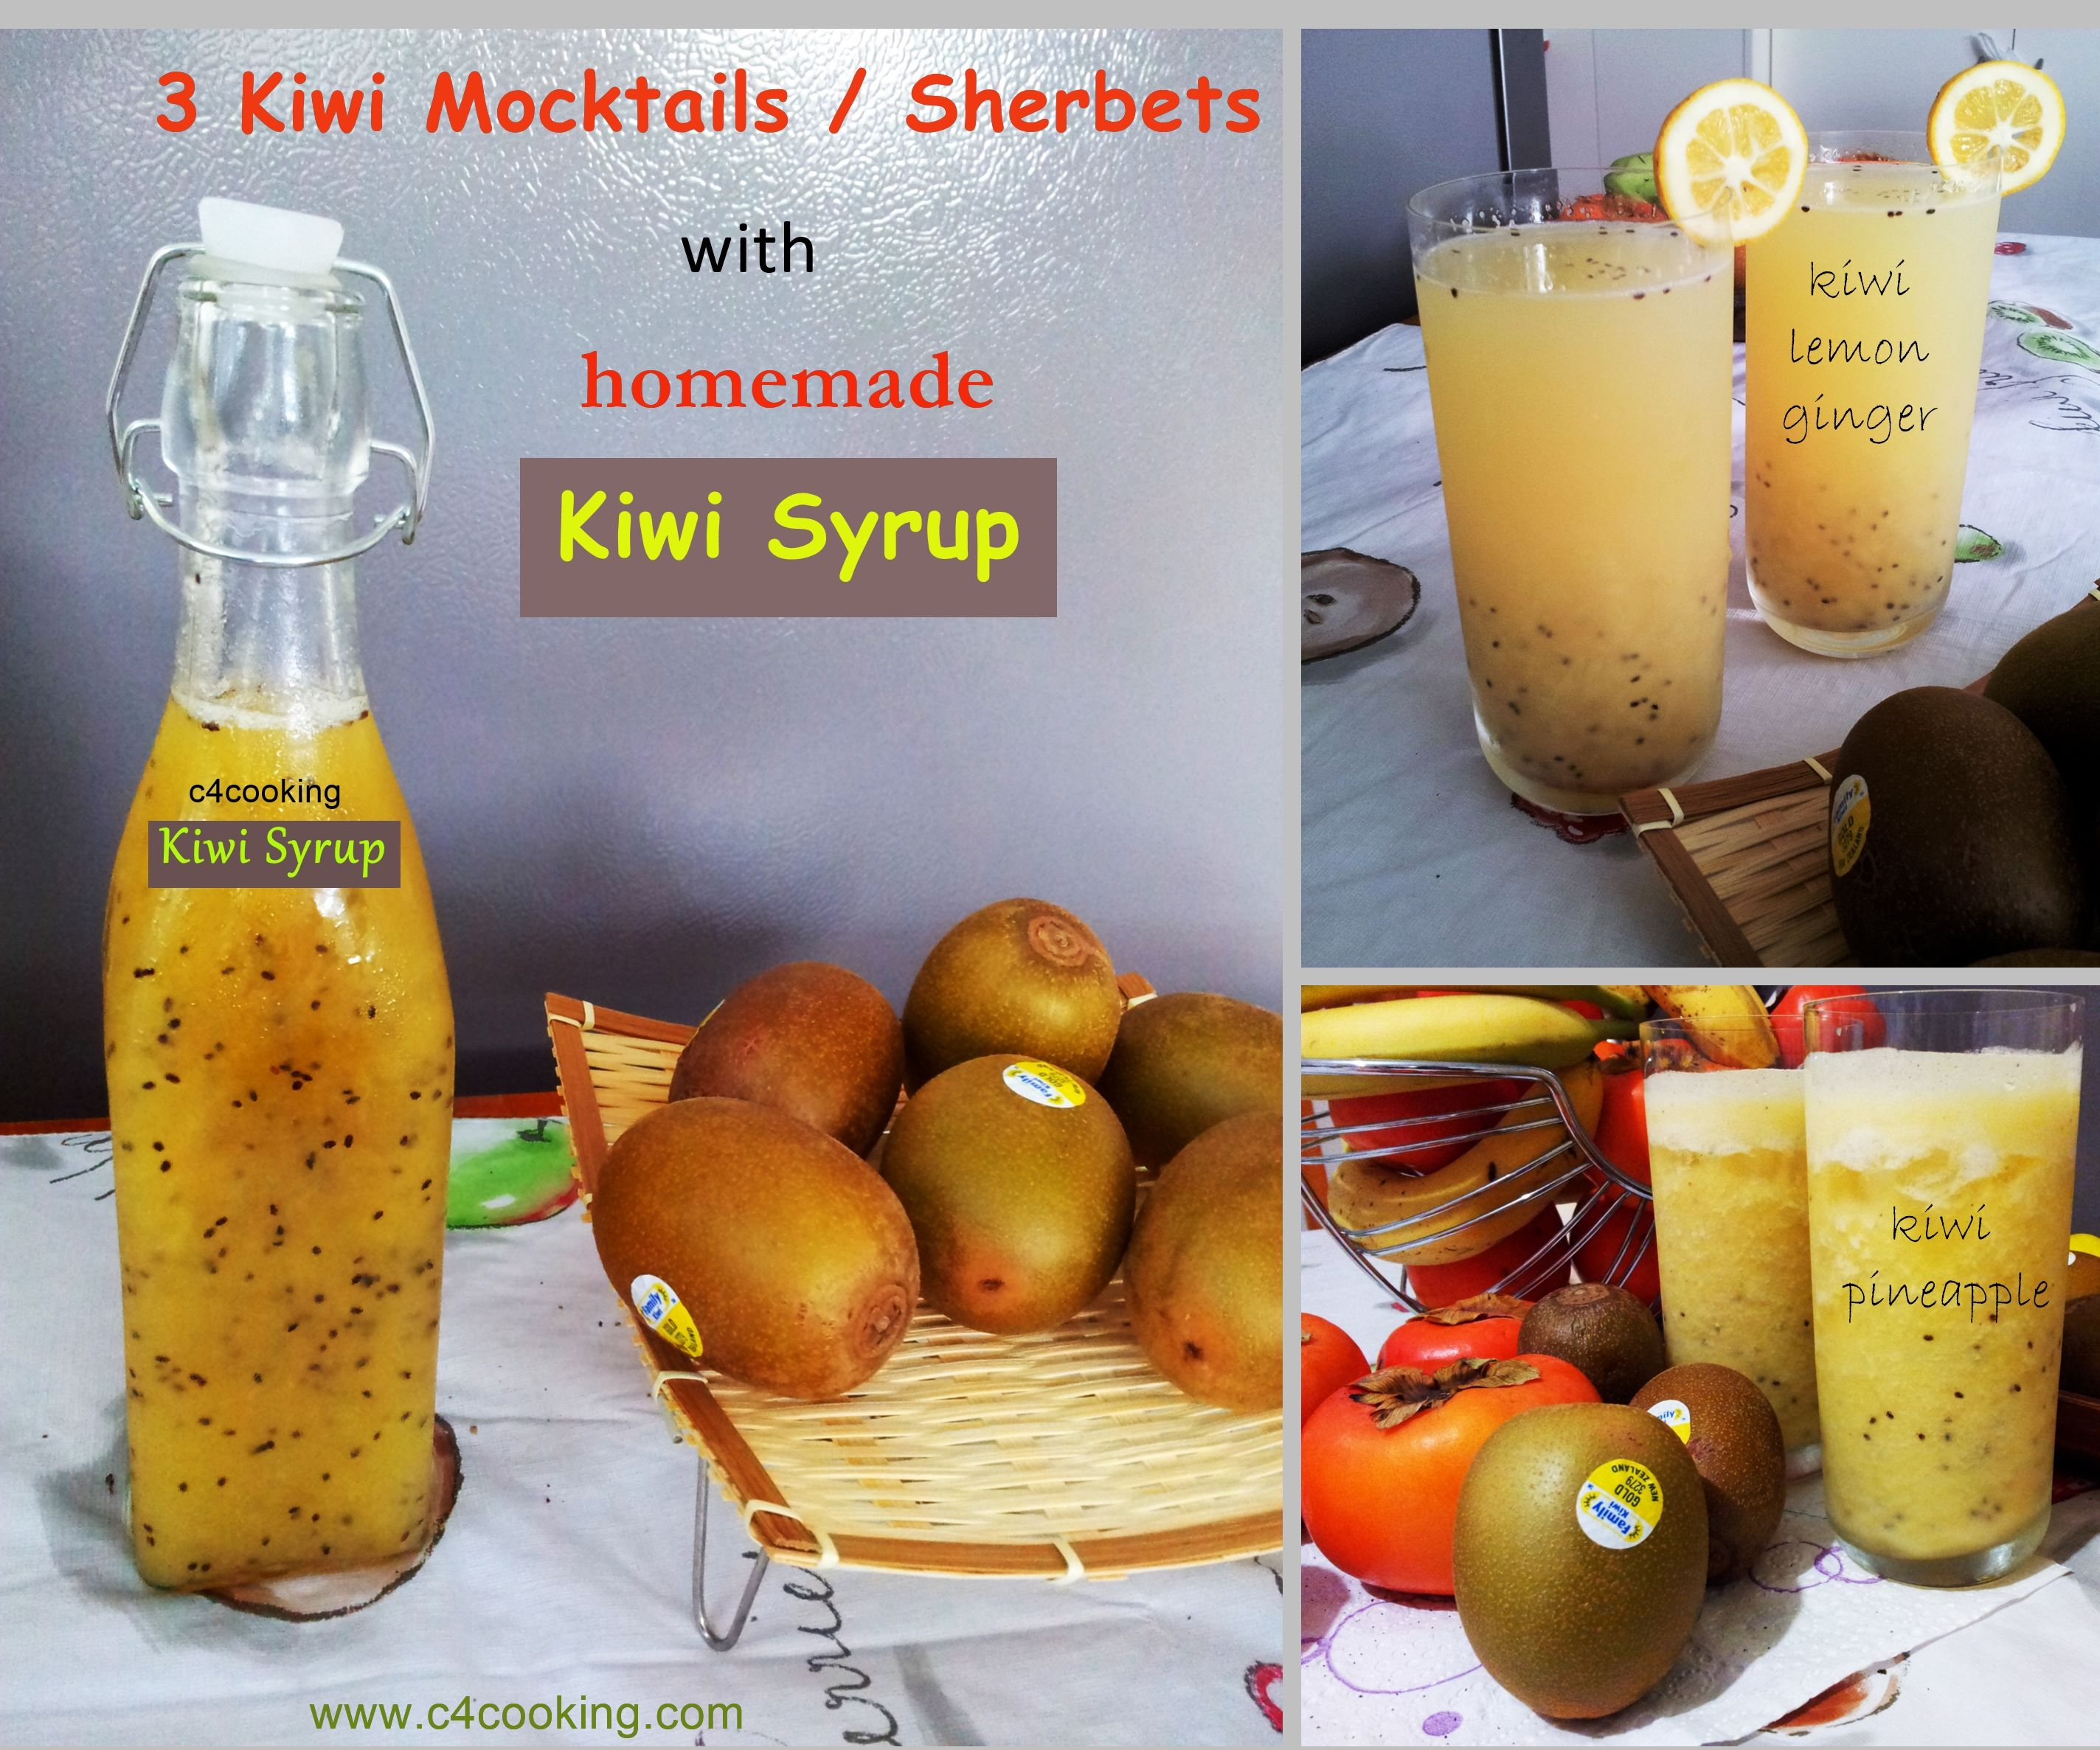 3 Refreshing Kiwi Mocktails / Sherbets With Homemade Kiwi Syrup: 3